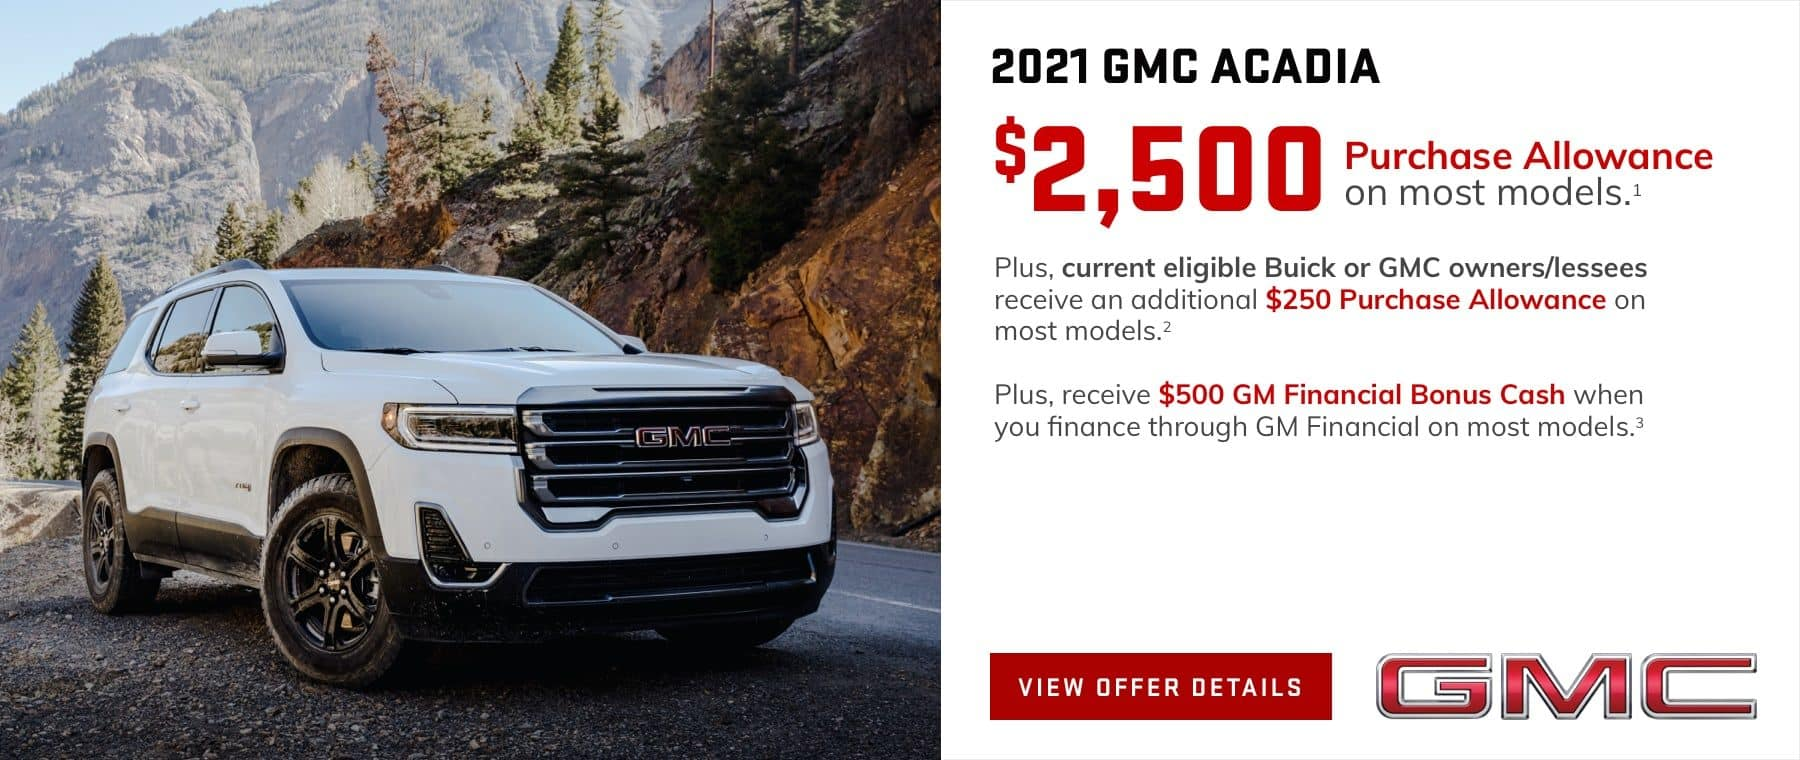 $2,500 Purchase Allowance on most models.1 Plus, current eligible Buick or GMC owners/lessees receive an additional $250 Purchase Allowance on most models.2 Plus, receive $500 GM Financial Bonus Cash when you finance through GM Financial on most models.3